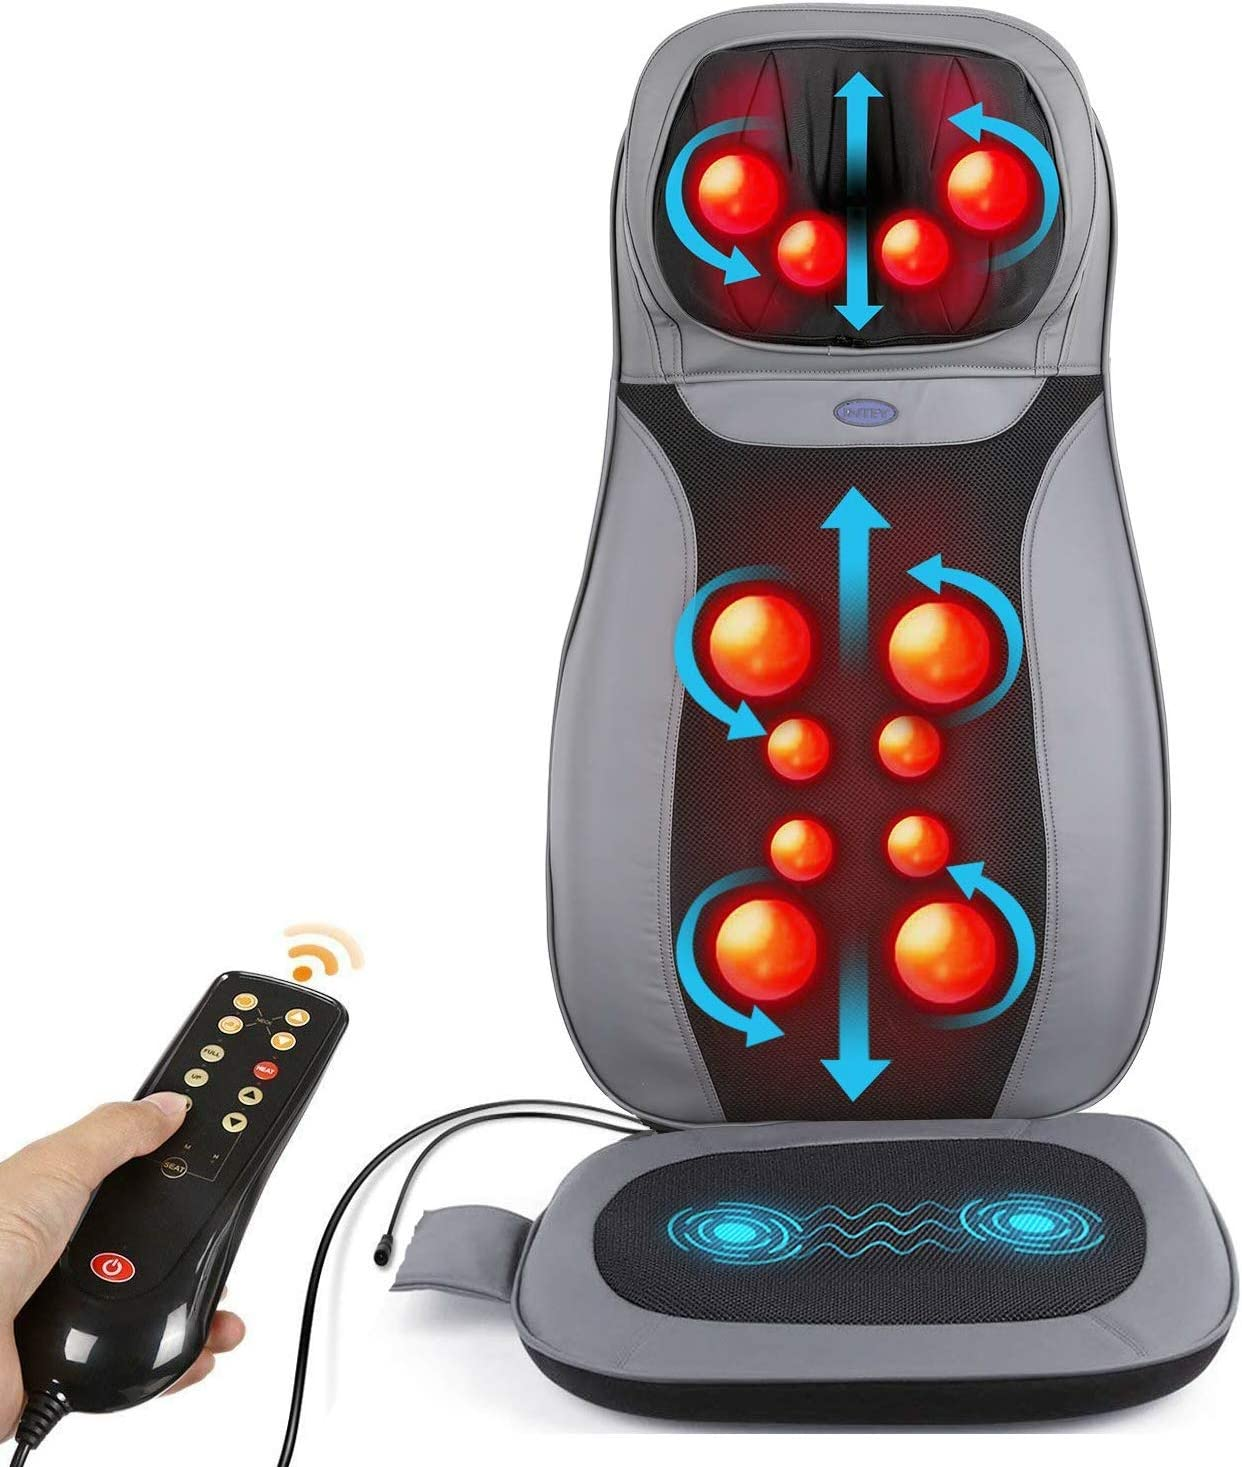 INTEY Shiatsu Neck Back Massage Cushion with Heat, 12 3D-Massage Balls Full Back Kneading Shiatsu or Rolling Massage Chair pad with Height Adjustment, Relieve Muscle Pain for Home, Office or Car